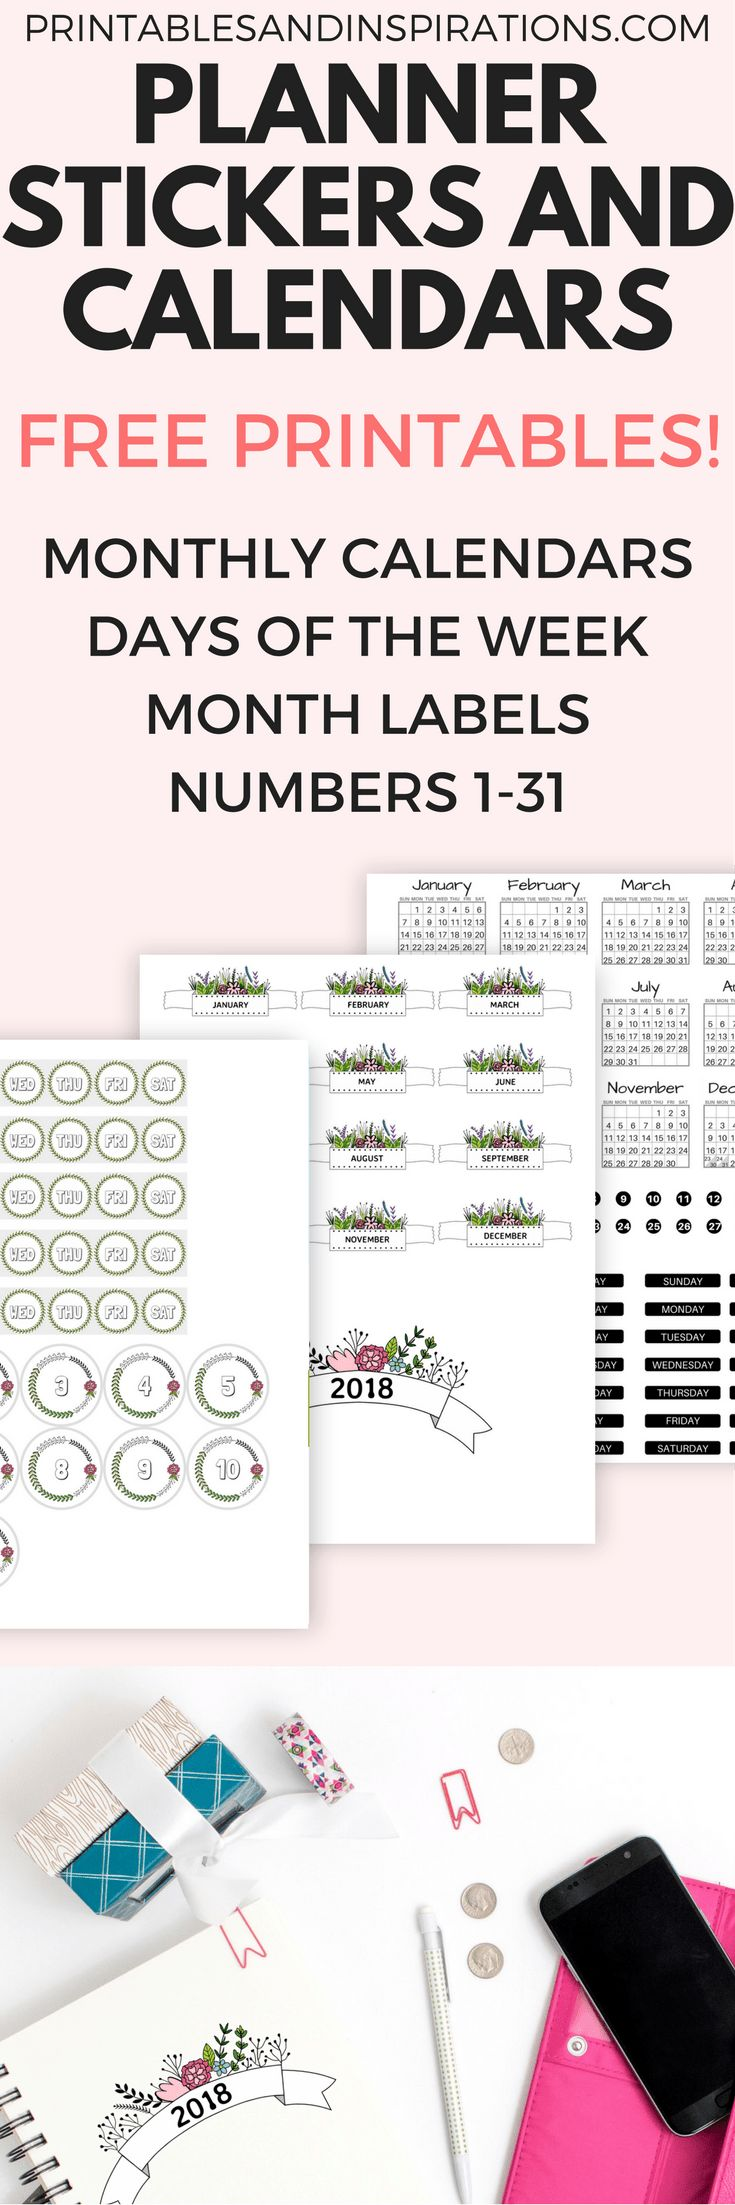 free printable planner stickers and calendars for 2018, free planner printables, monthly calendars for bullet journal, bujo stickers